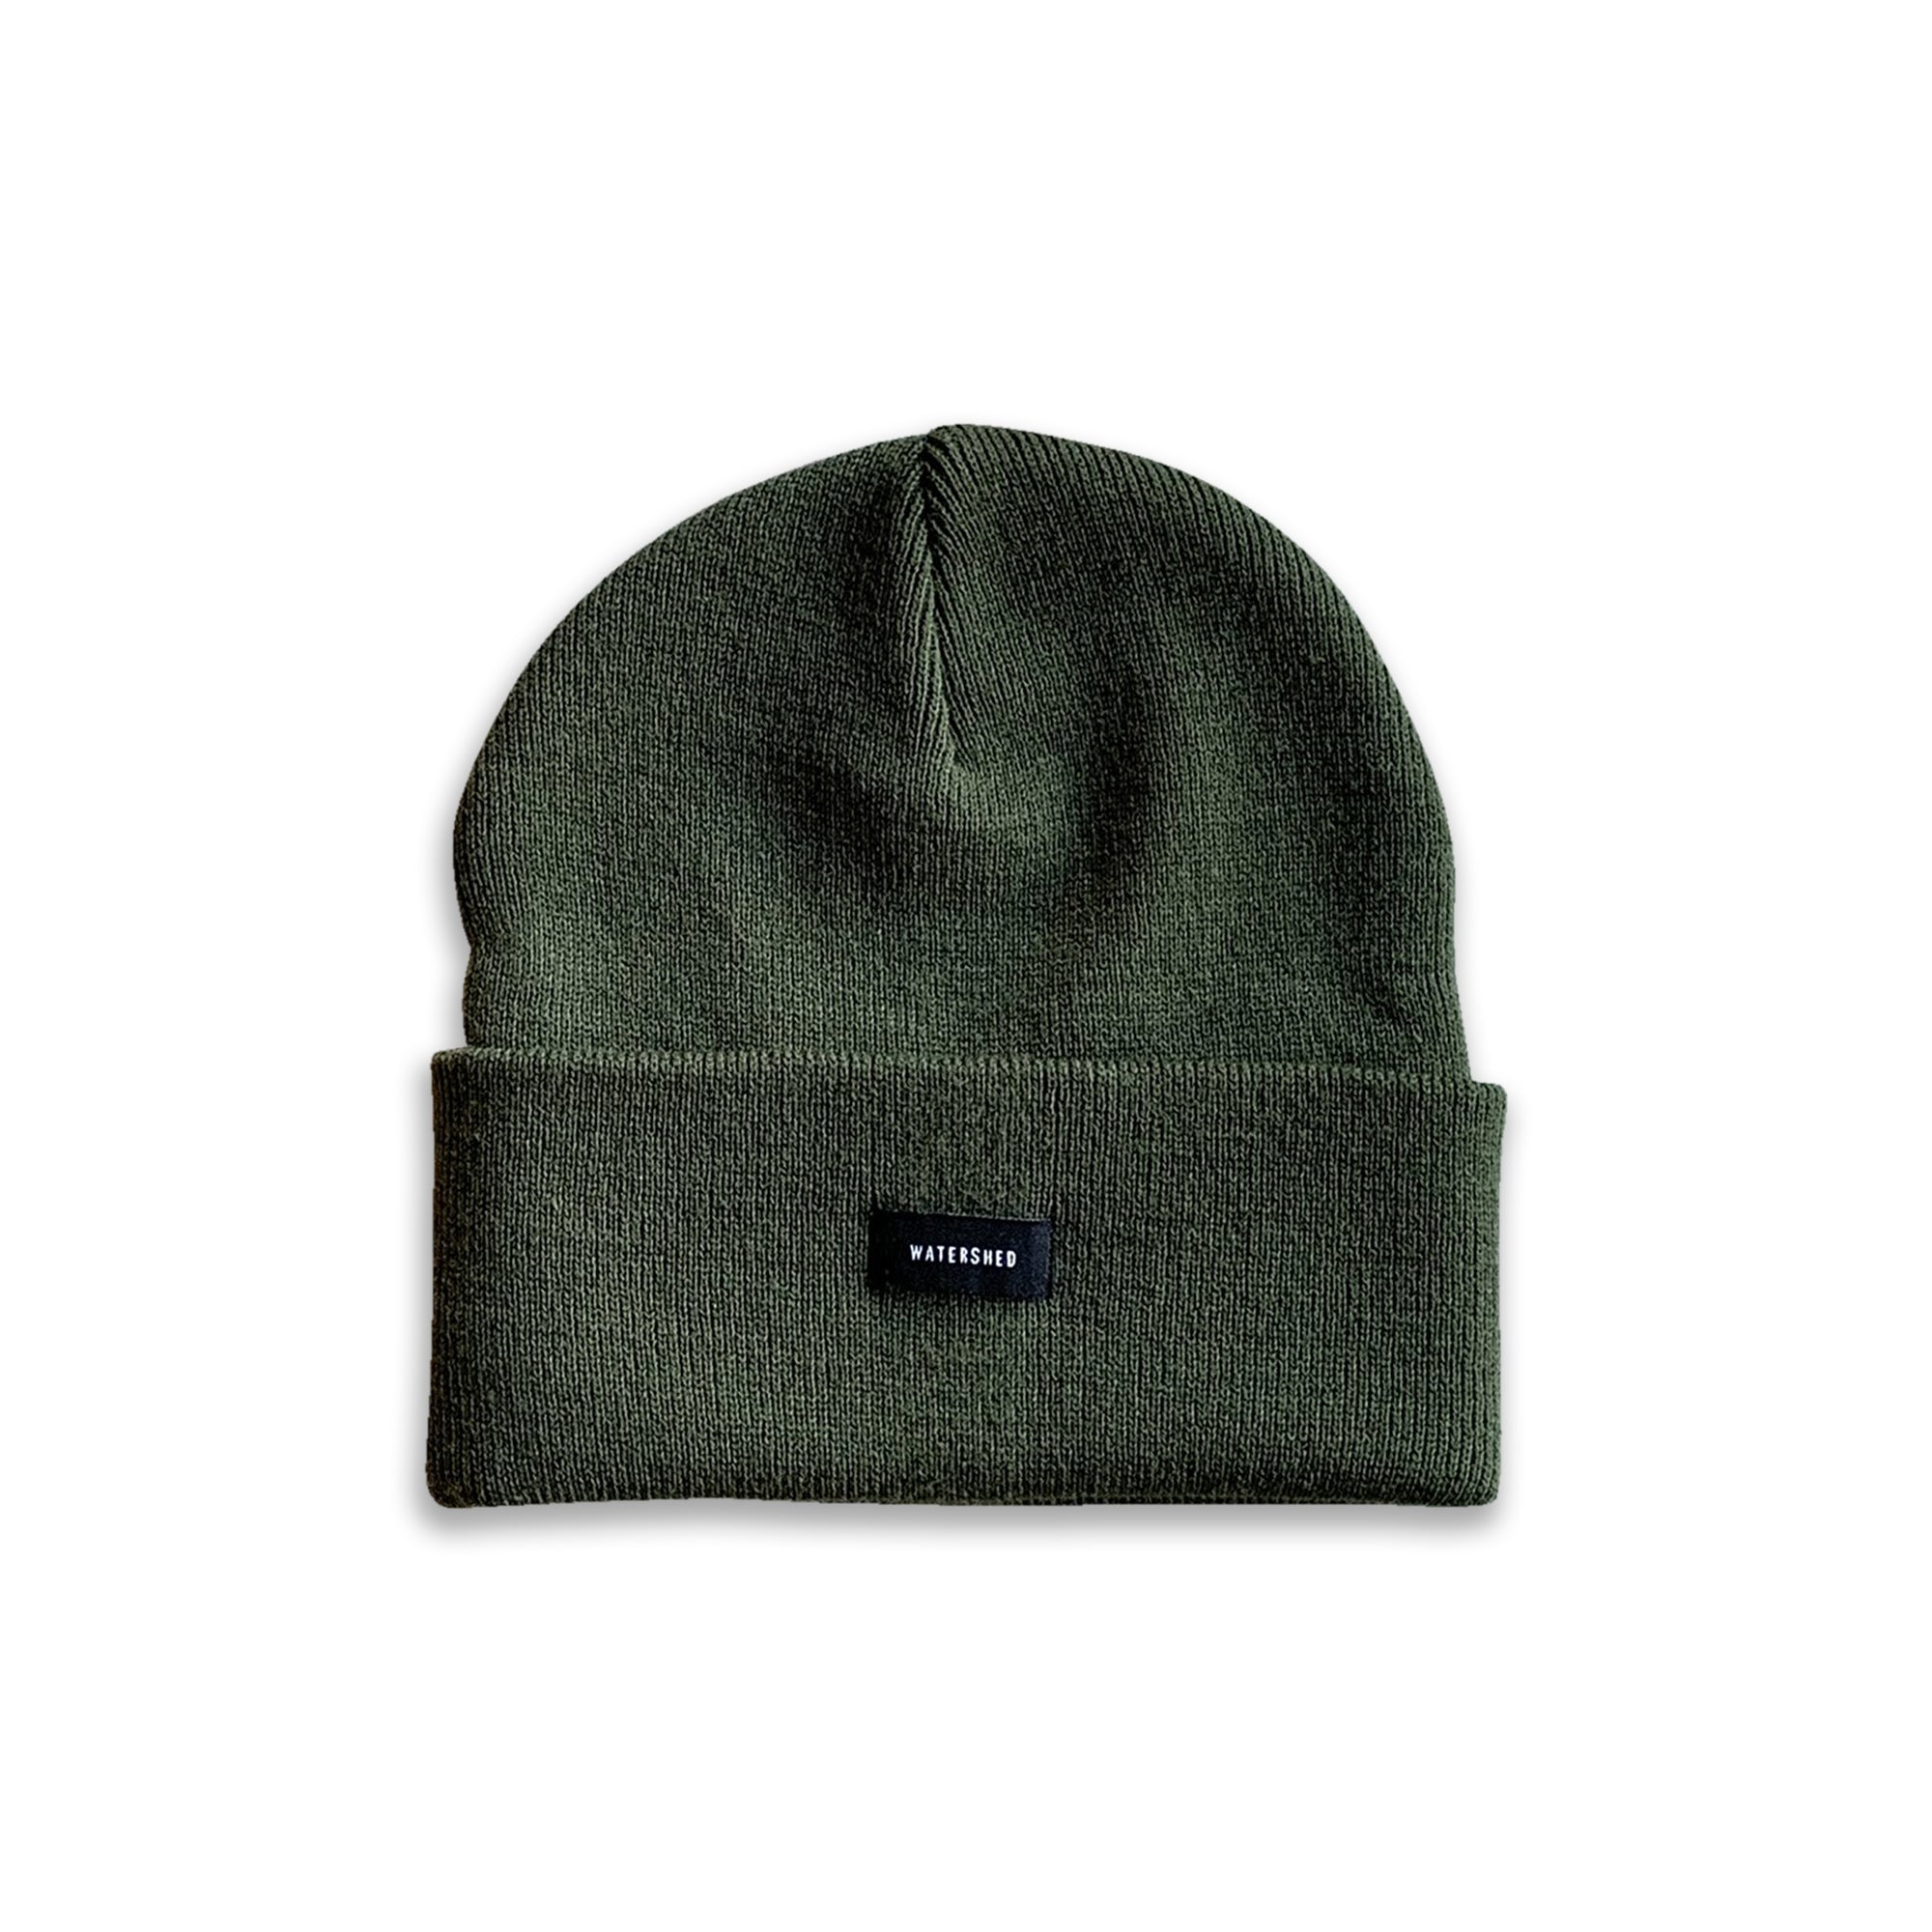 Watershed Standard Issue Beanie - Olive